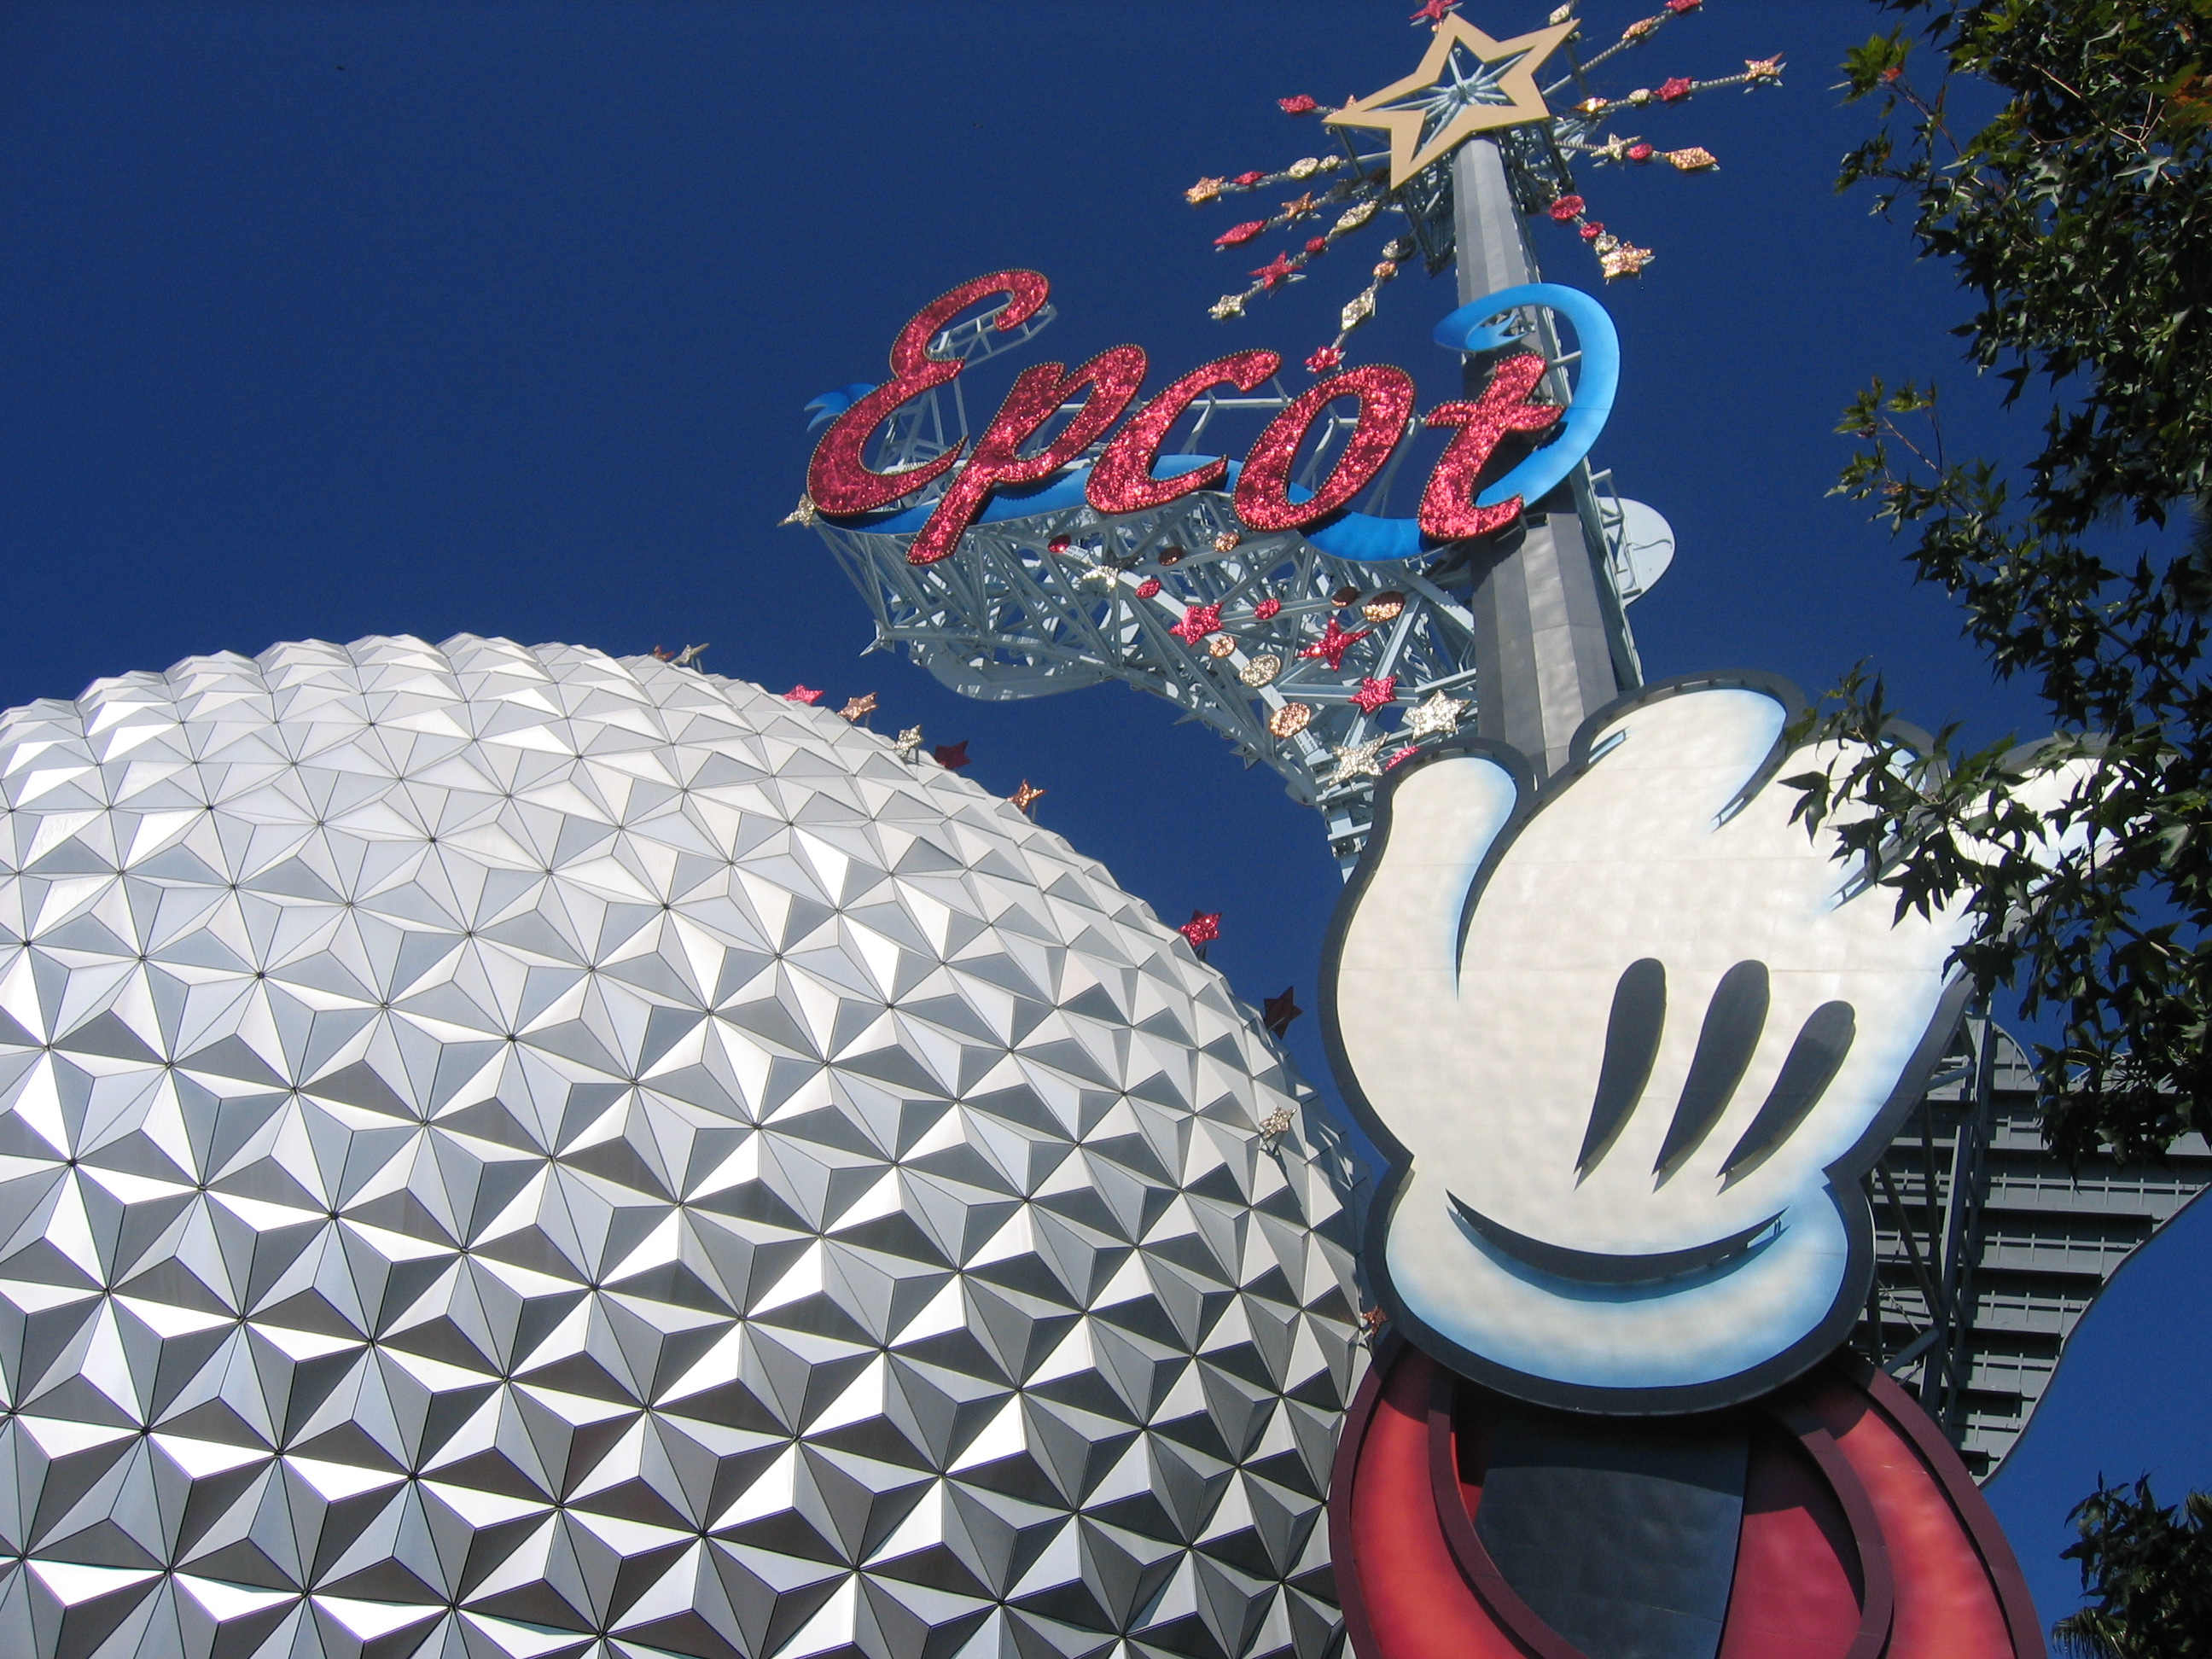 Book your Florida vacation and visit EPCOT